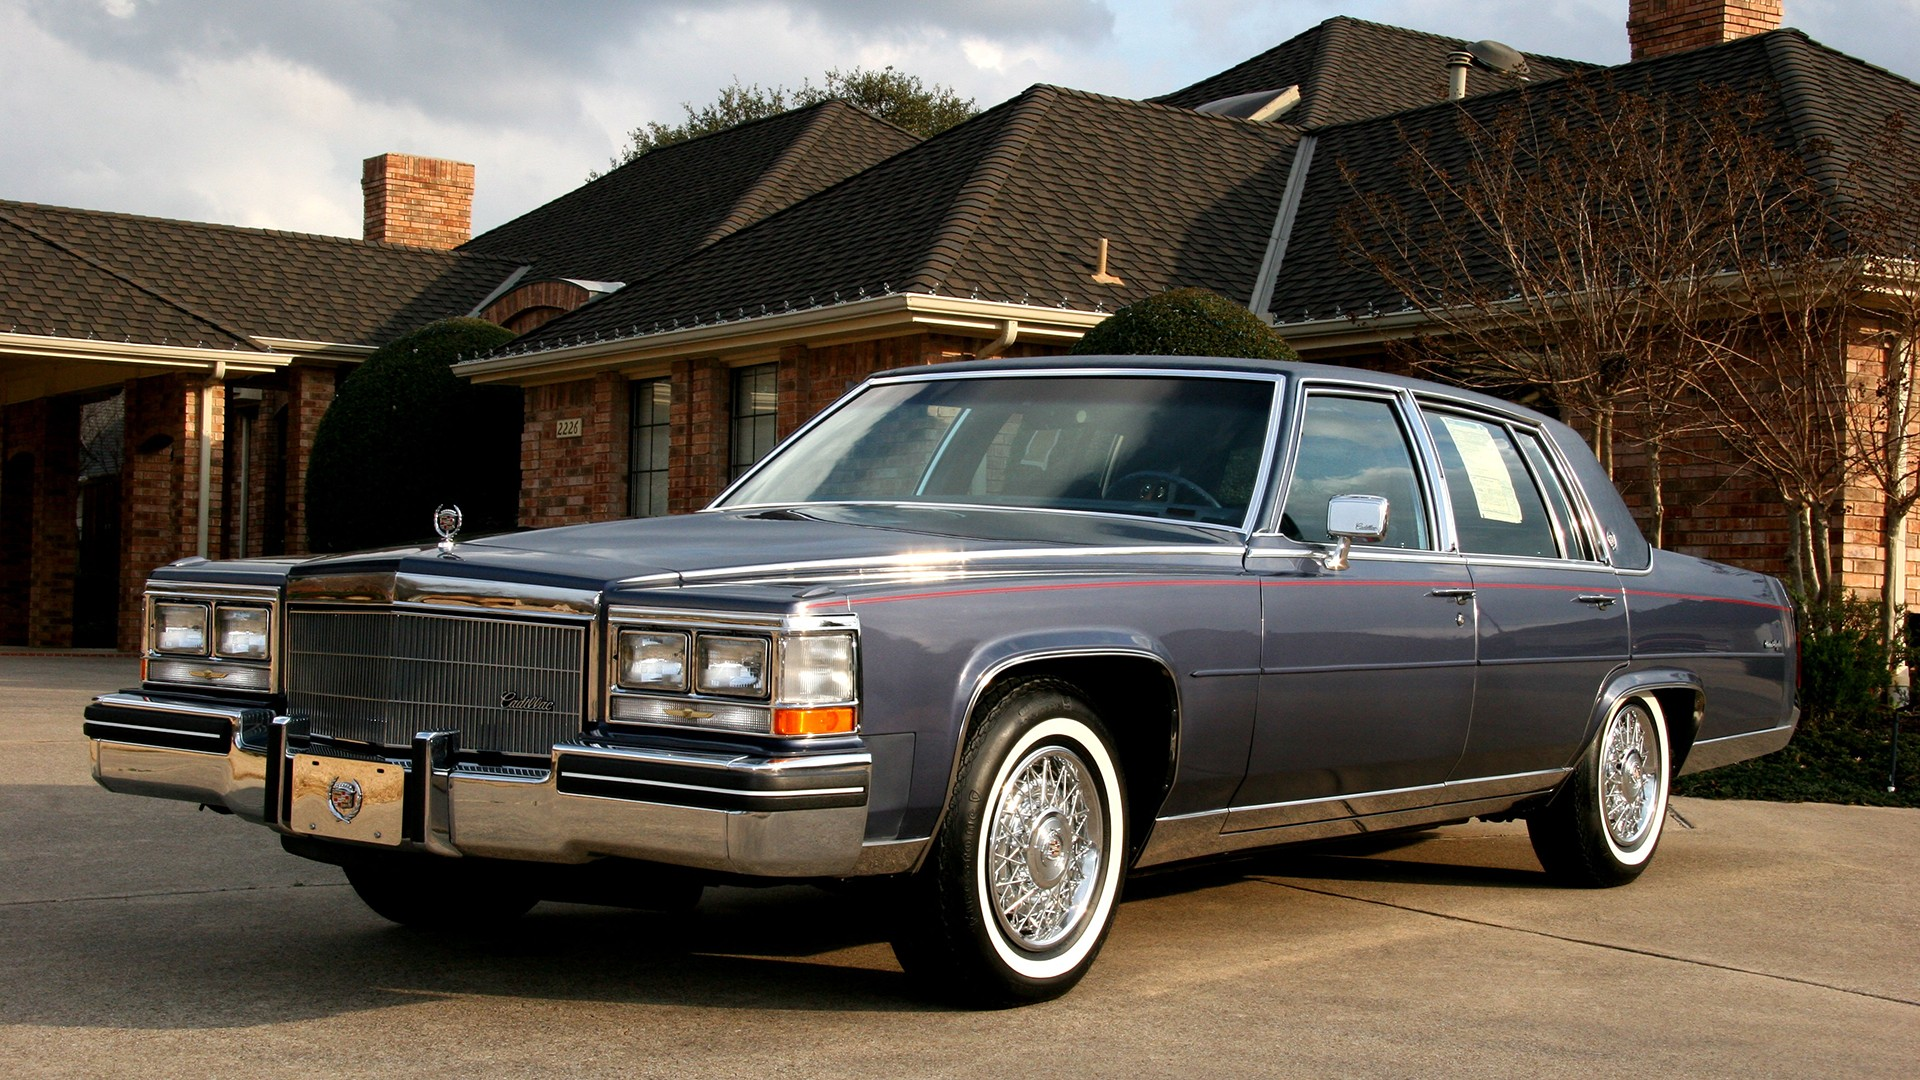 Classic Old Car Wallpapers 1600x900 1 1984 Cadillac Fleetwood Hd Wallpapers Background